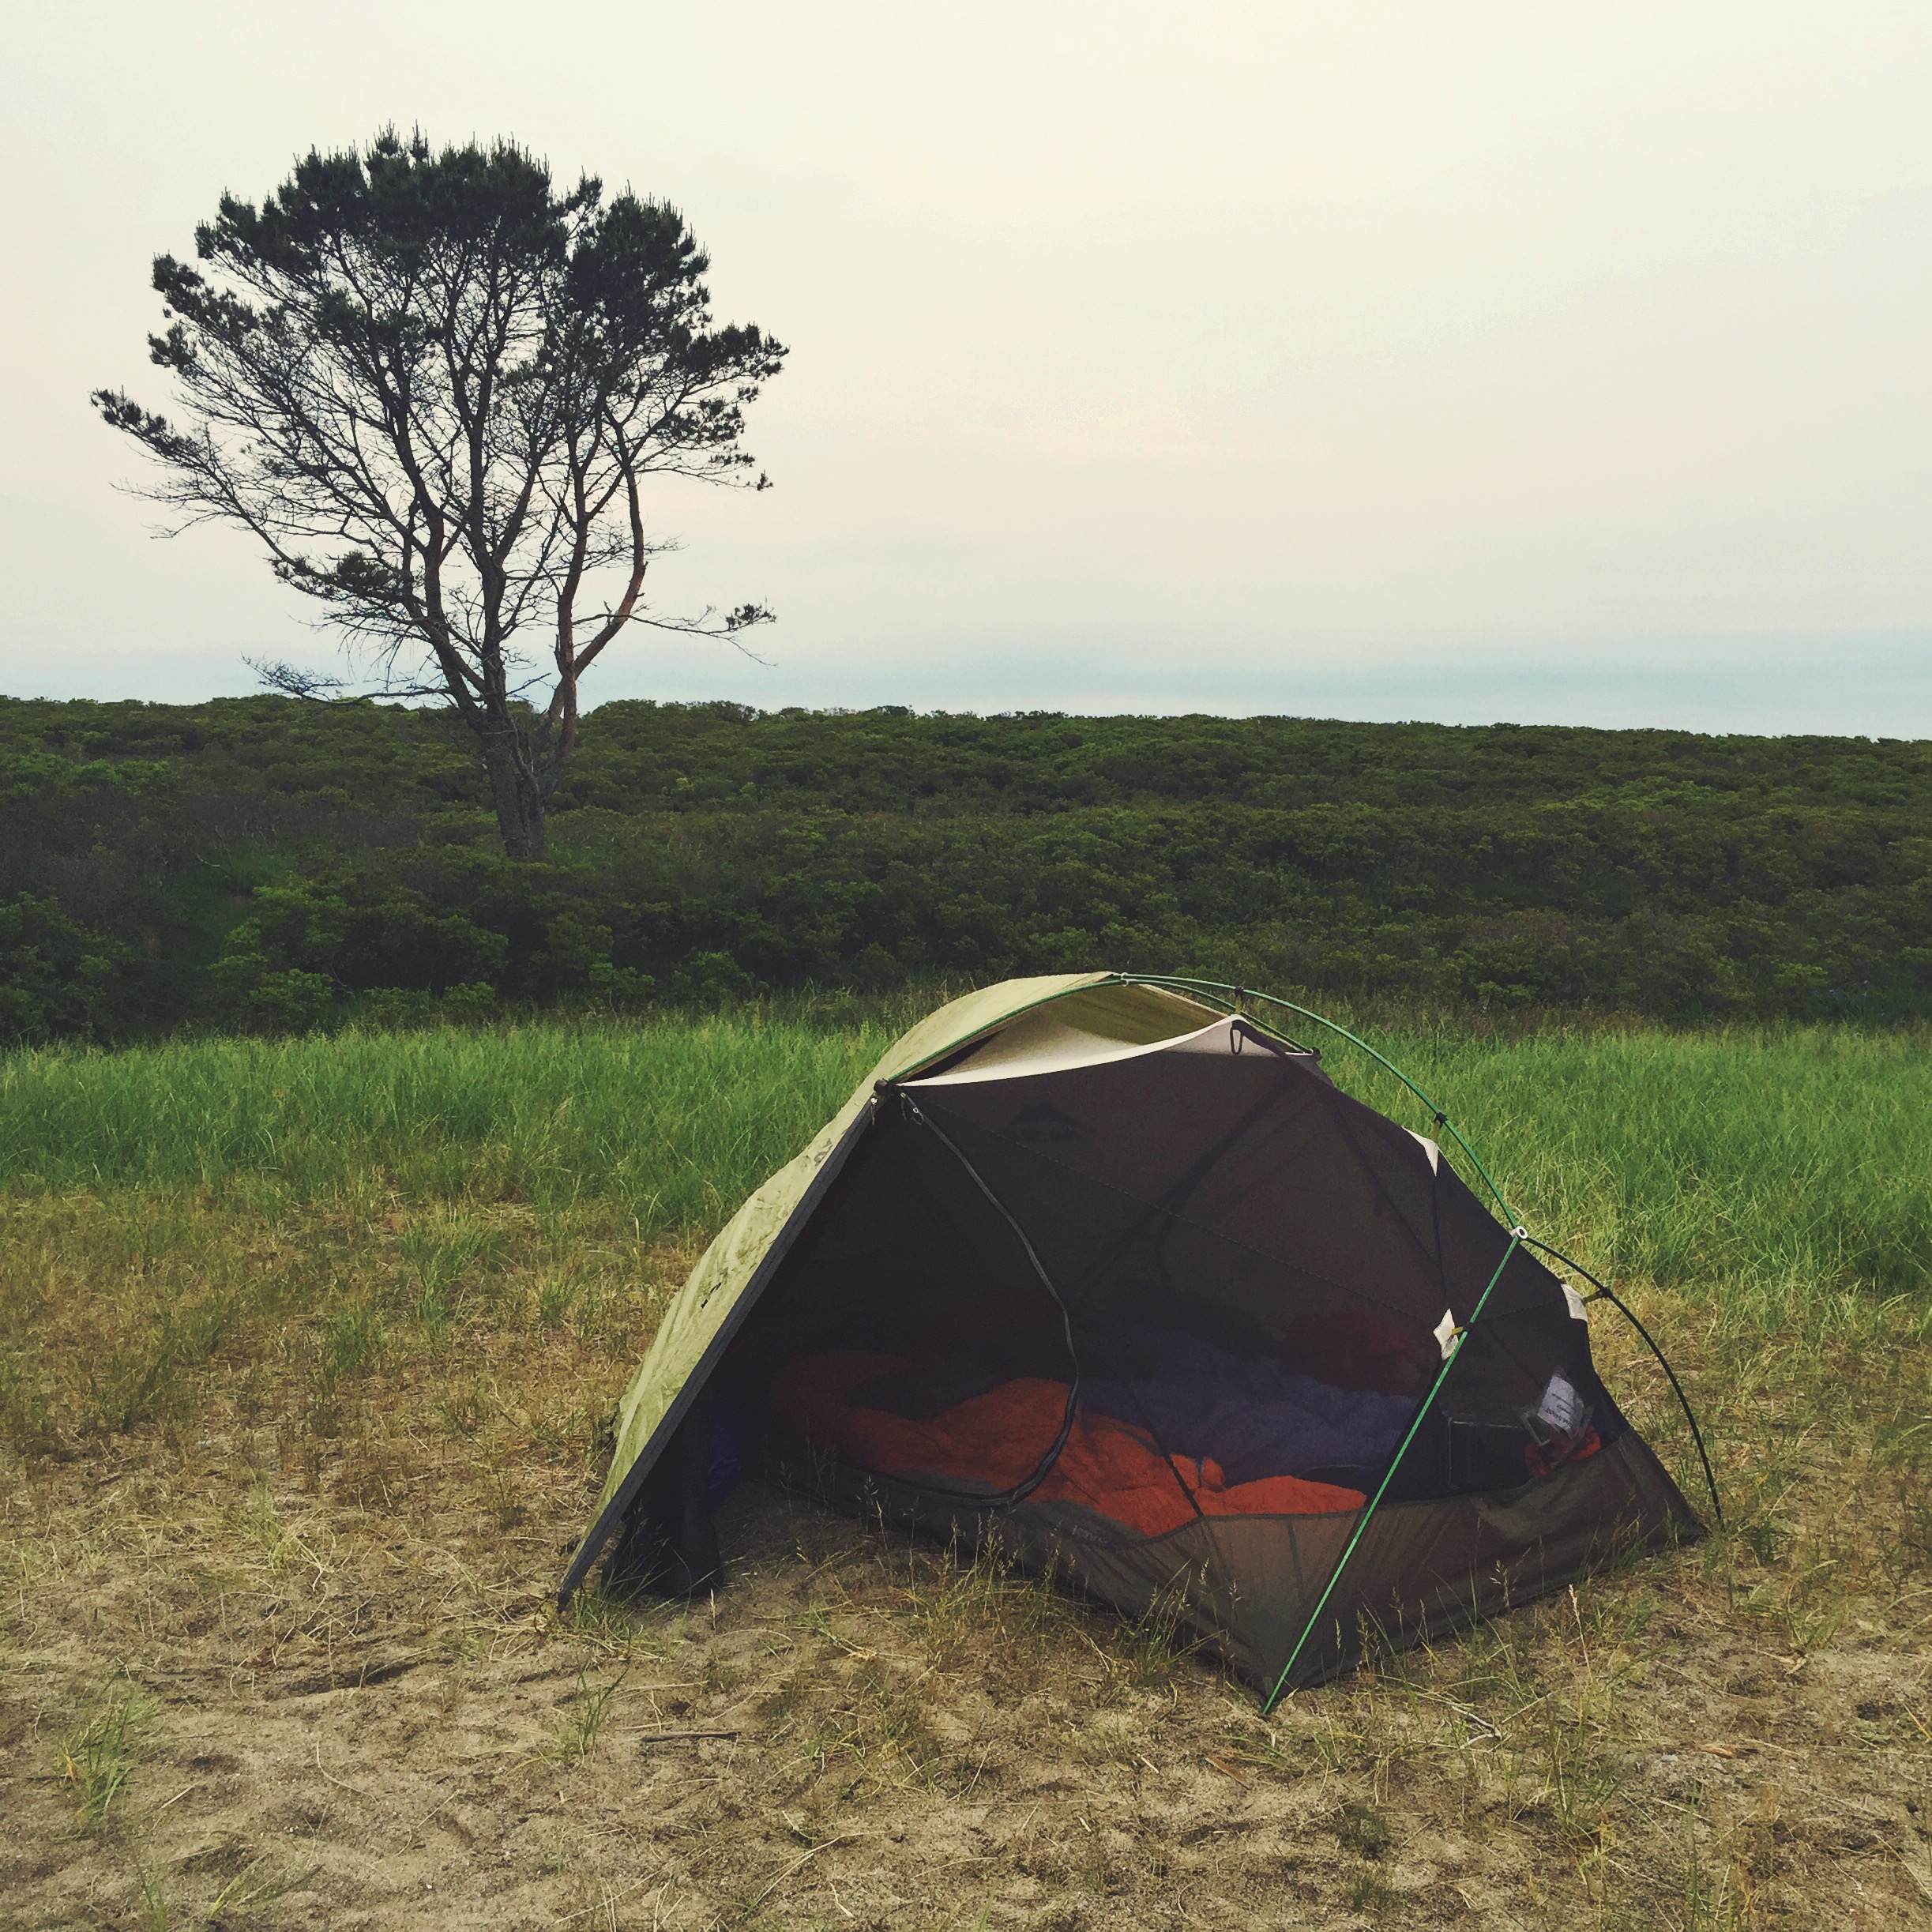 The night was dry and warm which means we got to 'half-moon' our tent and look at the ocean and moon all night.